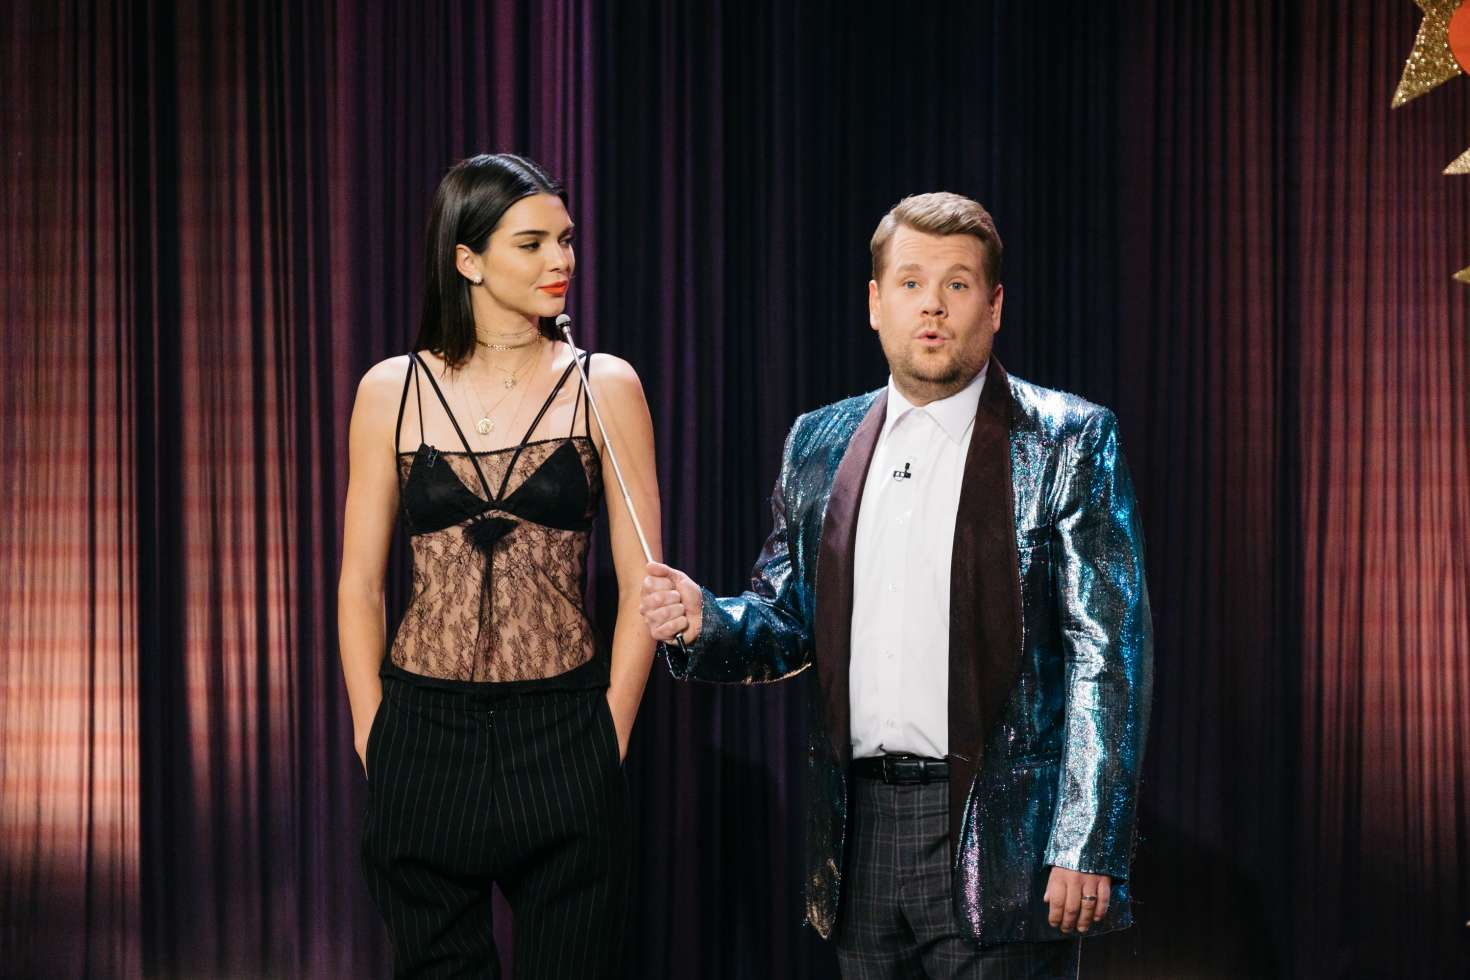 Kendall Jenner 0n The Late Late Show with James Corden -02 | GotCeleb